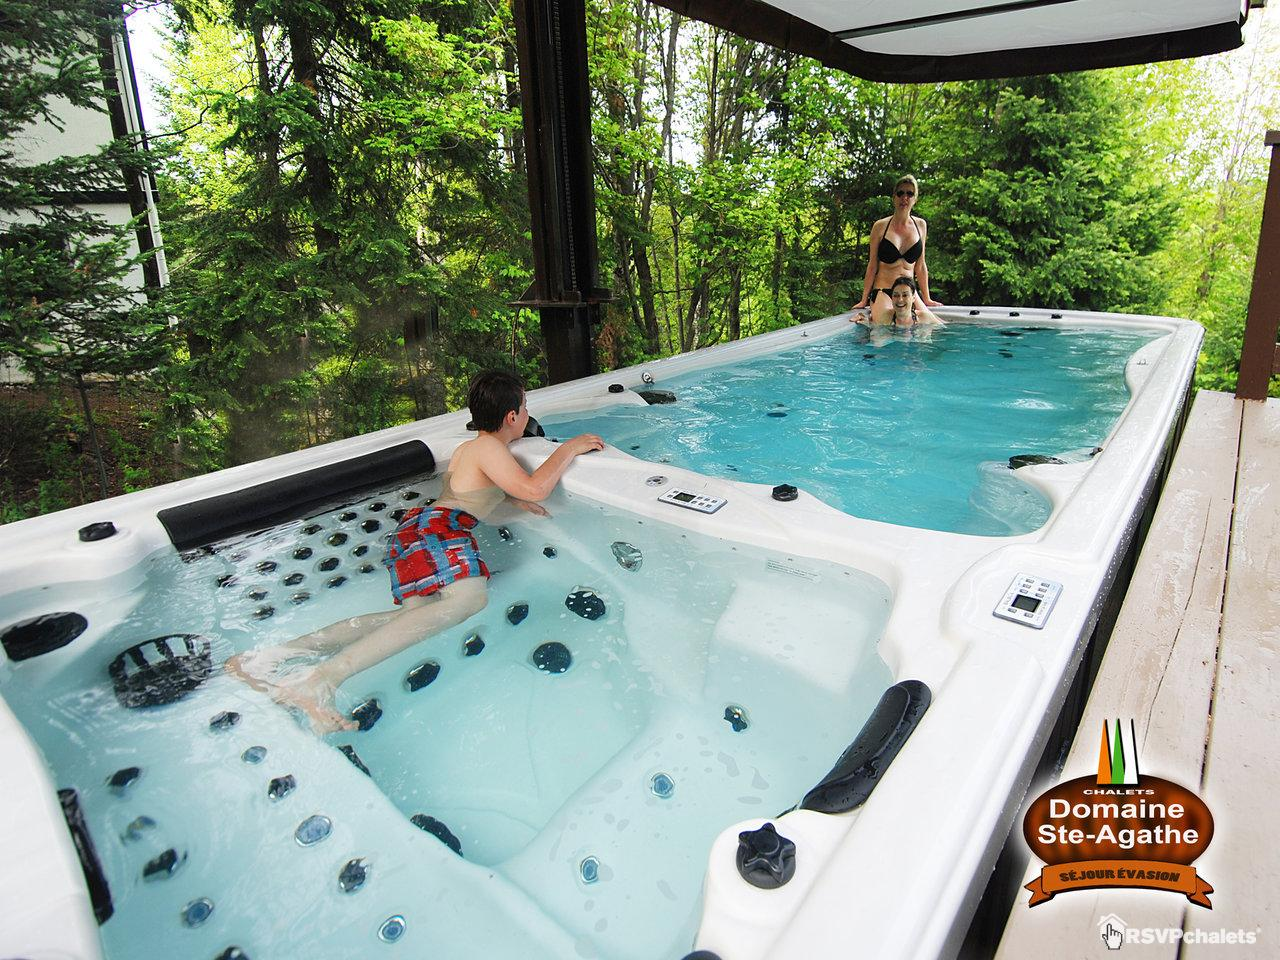 Chalet louer le fribourg no 30 ste agathe des monts for Club piscine ste agathe des monts